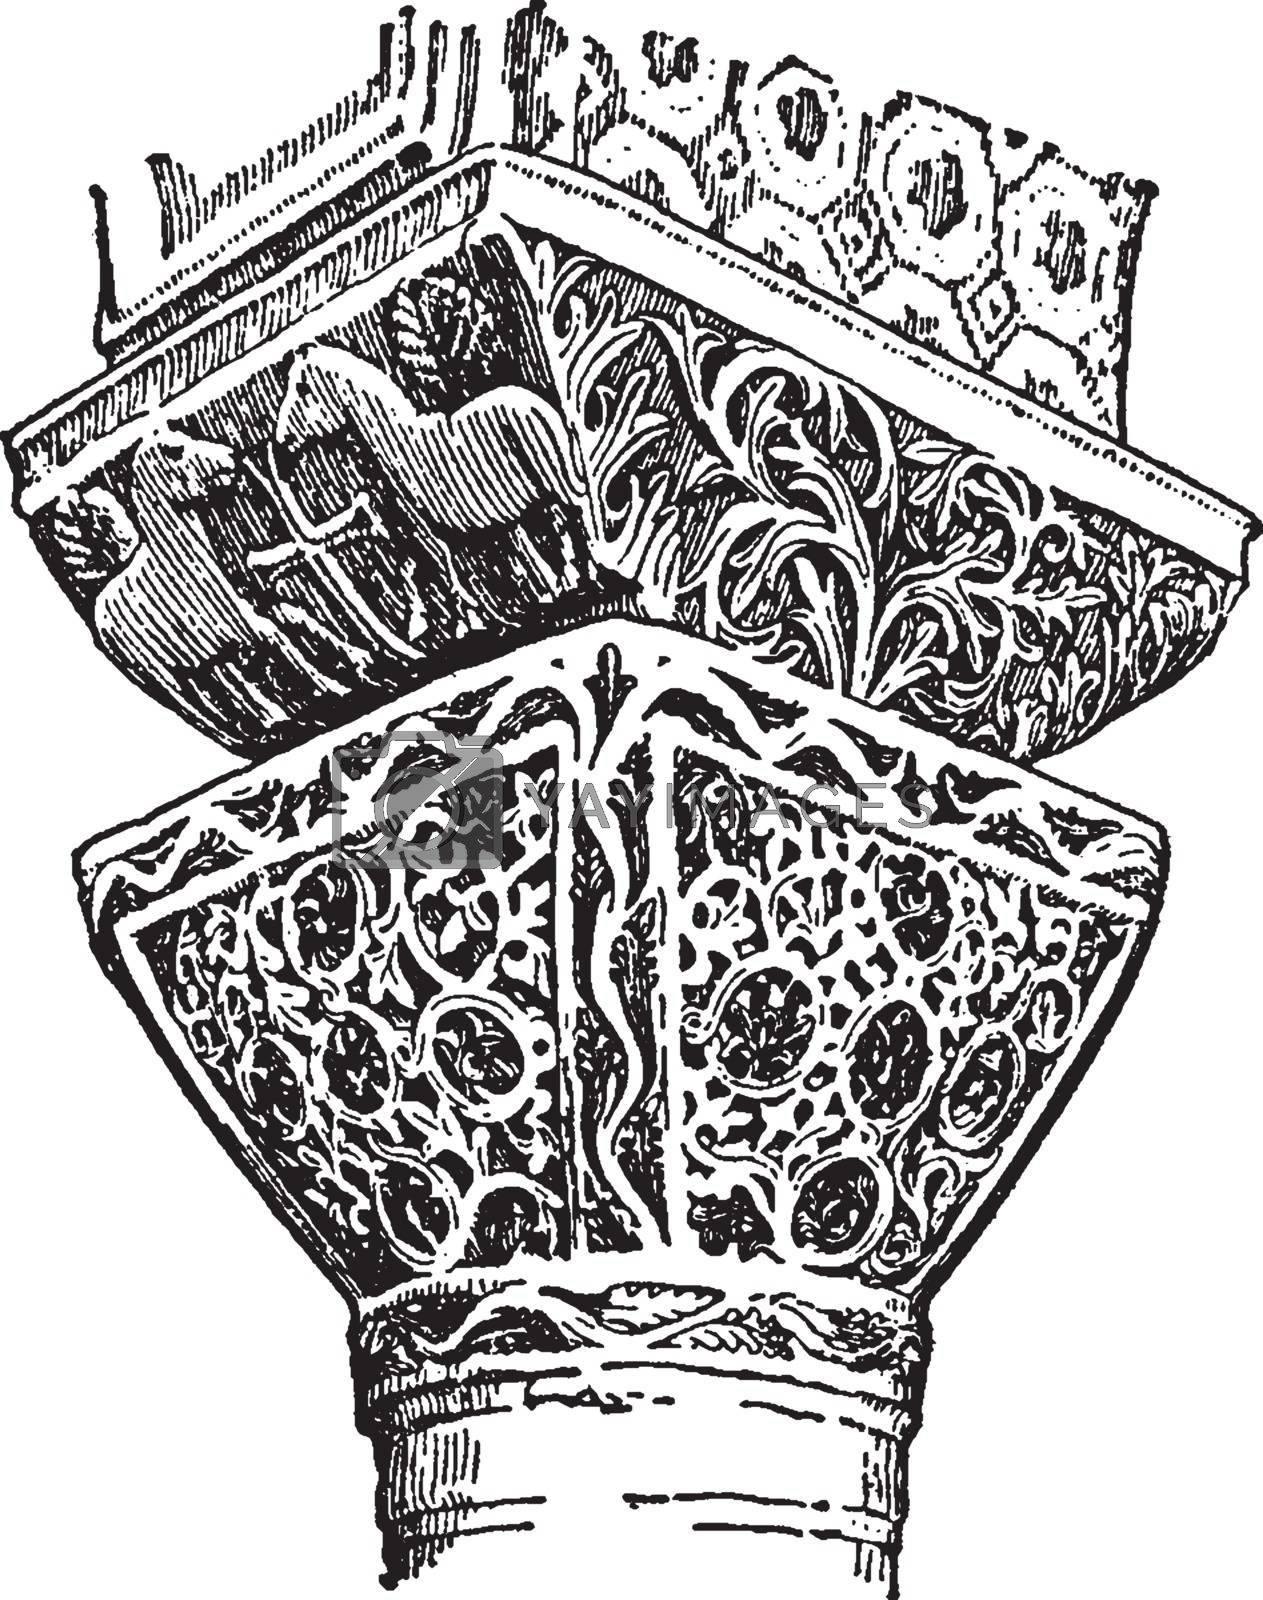 Byzantine Capitals is from the Church of St. Vitale, vintage eng by Morphart